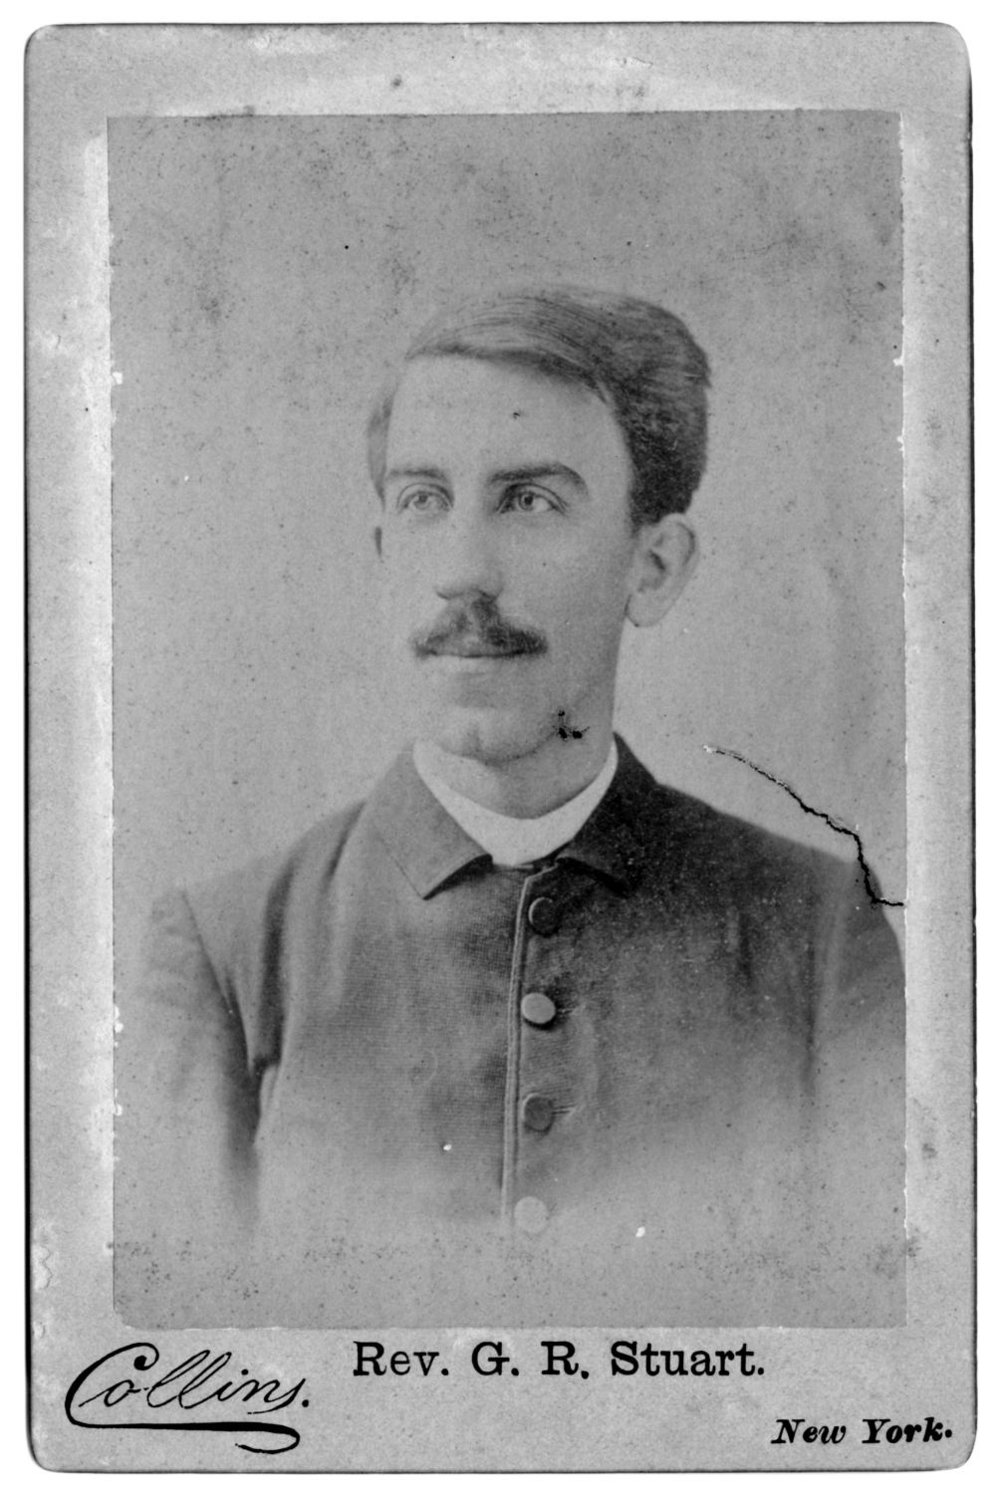 Collins Studio - New York, Rev. G. R. Stuart. University of North Texas Libraries, The Portal to Texas History, photo: Anderson County Historical Commission.